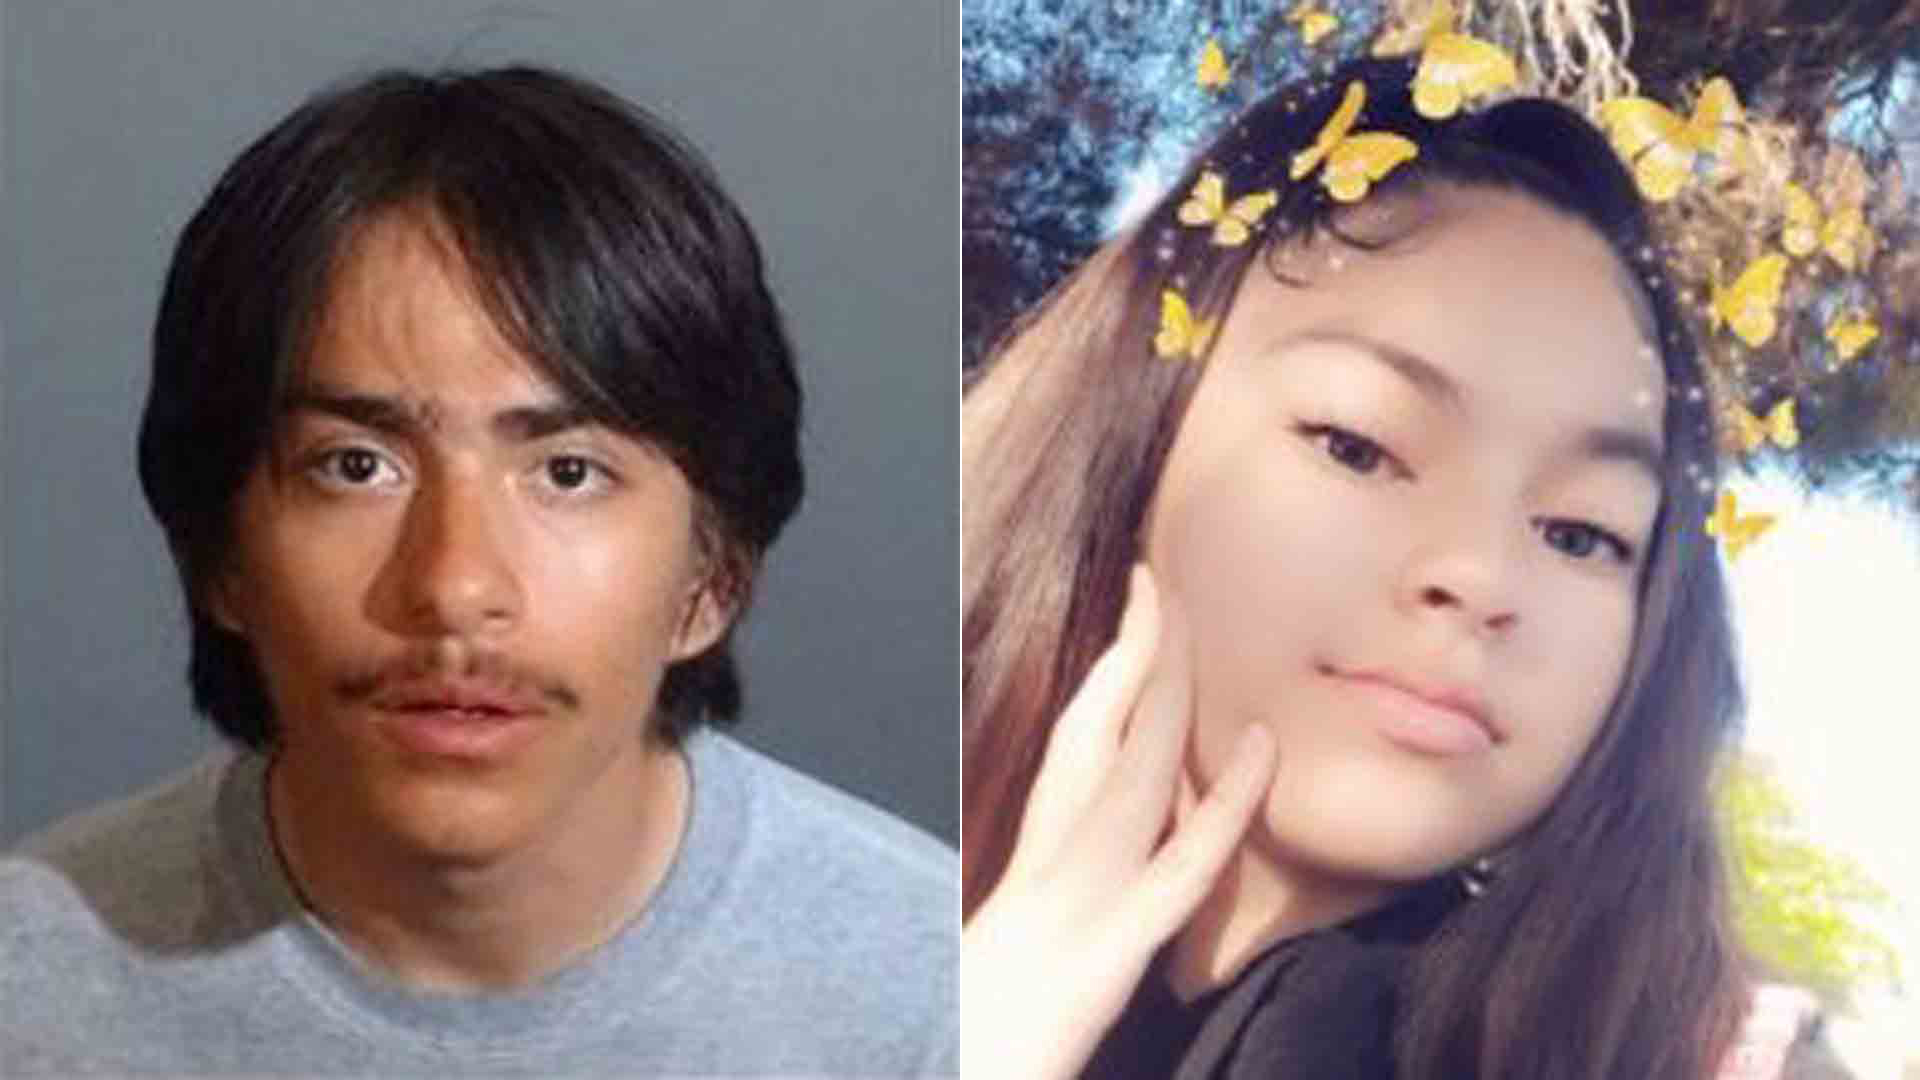 Eddie Alvirez, left, is seen in an image provided by the Los Angeles County Sheriff's Department; the victim, right, is seen in an image provided by a family member.